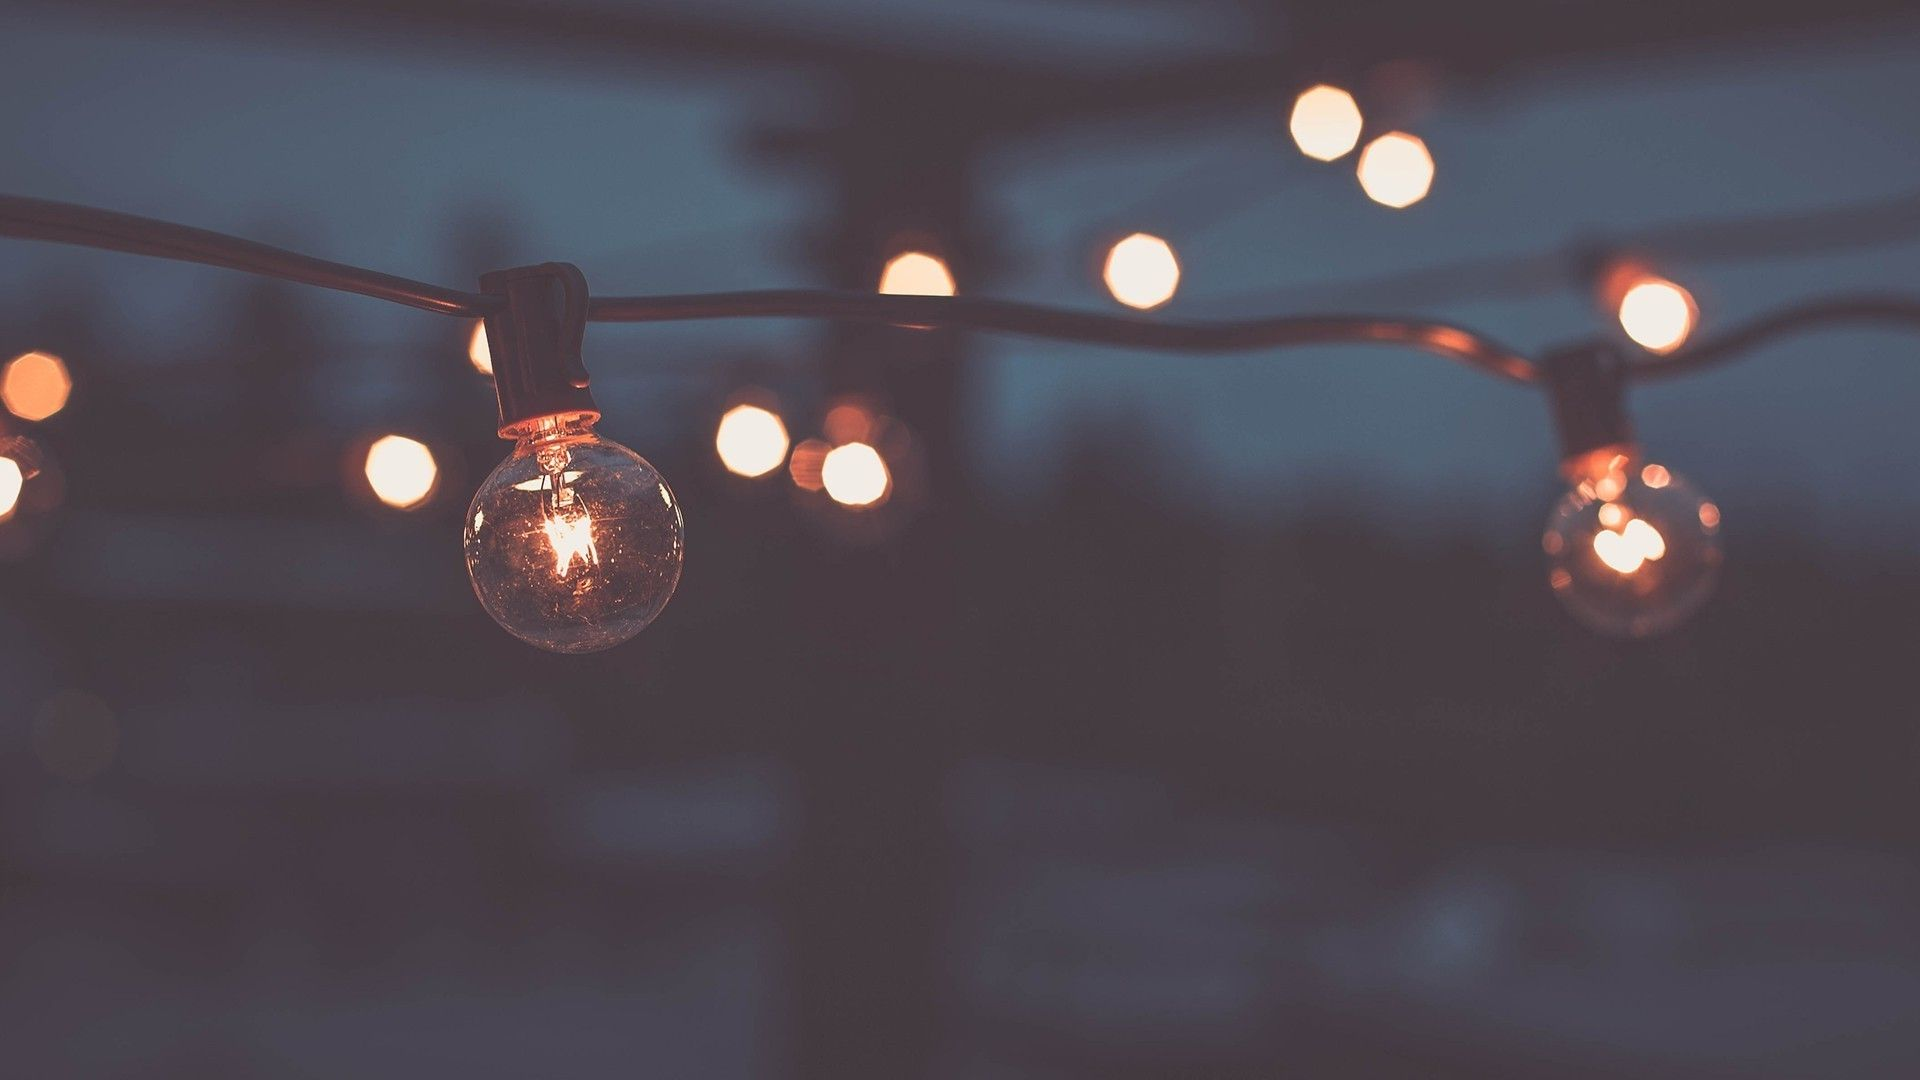 String Of Lights Background : String light bulbs Light Bulbs Pinterest Light bulb, Bulbs and Wallpaper